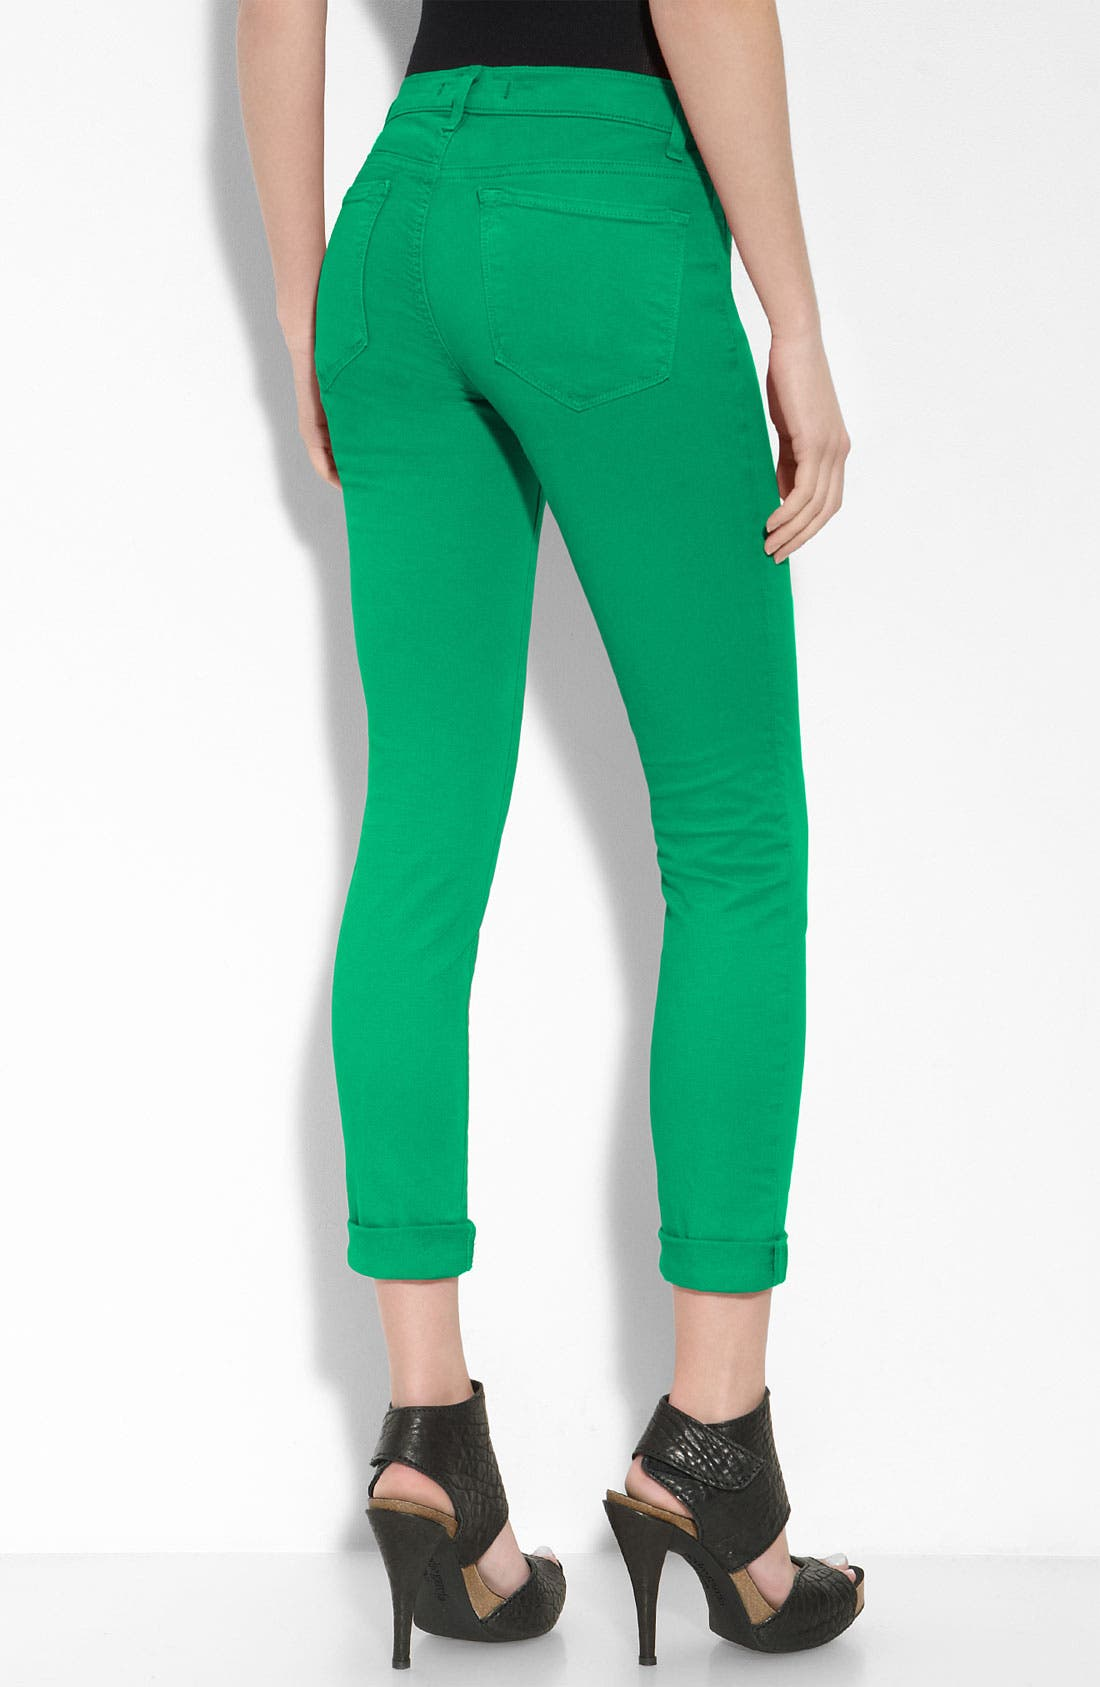 Skinny Stretch Twill Pants,                             Main thumbnail 1, color,                             Emerald Green